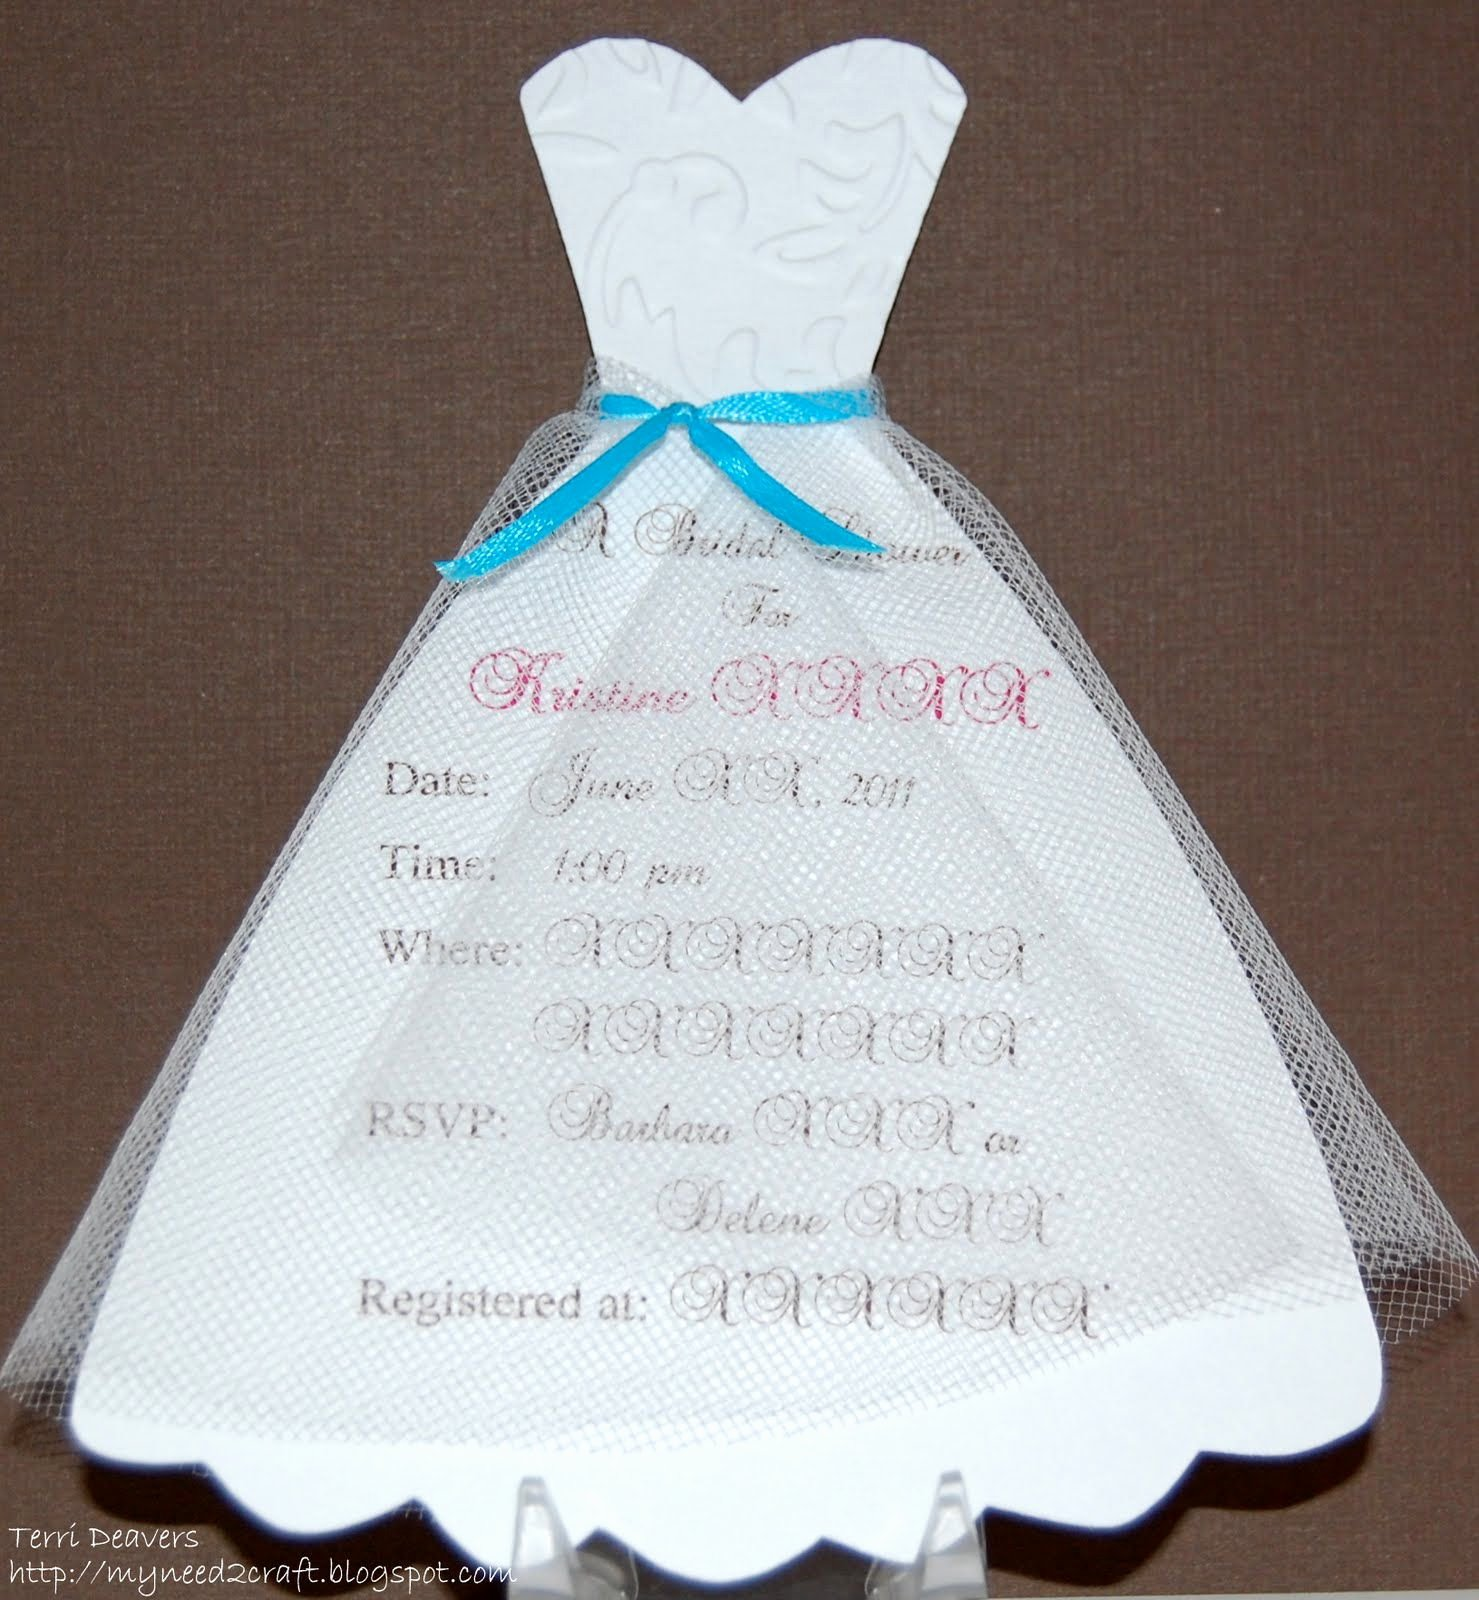 Bridal Shower Card Template Beautiful Diy Bridal Shower Invitations Diy Bridal Shower